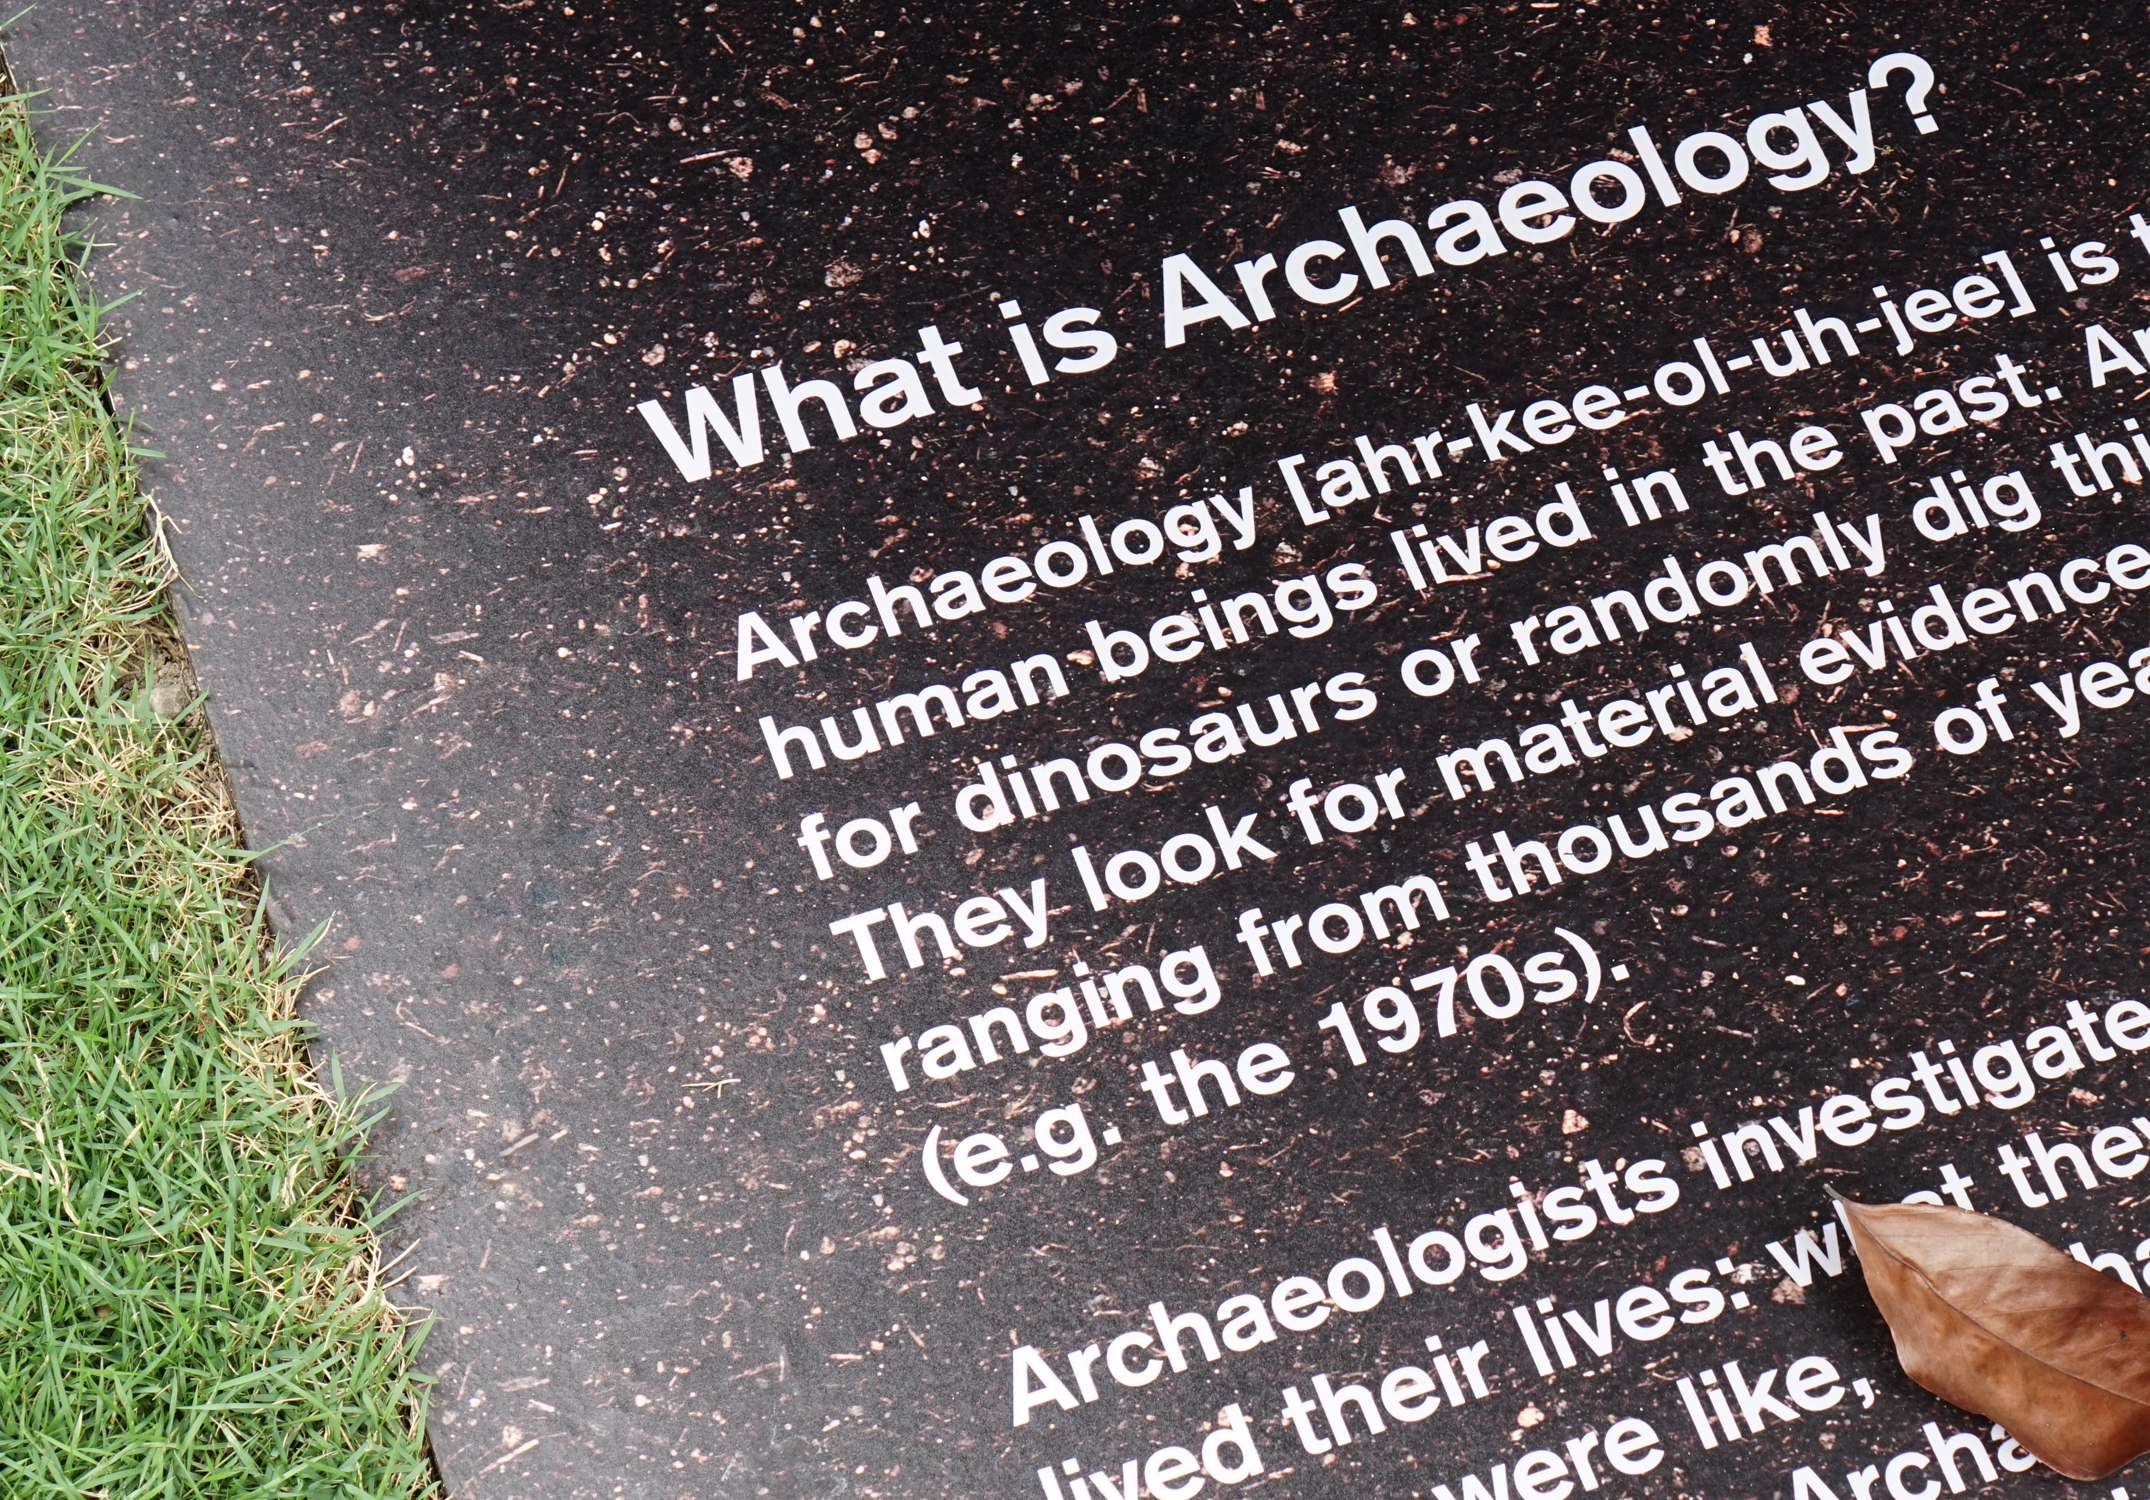 ARCHAEOLOGY IN SINGAPORE In collaboration with Heleston Chew.